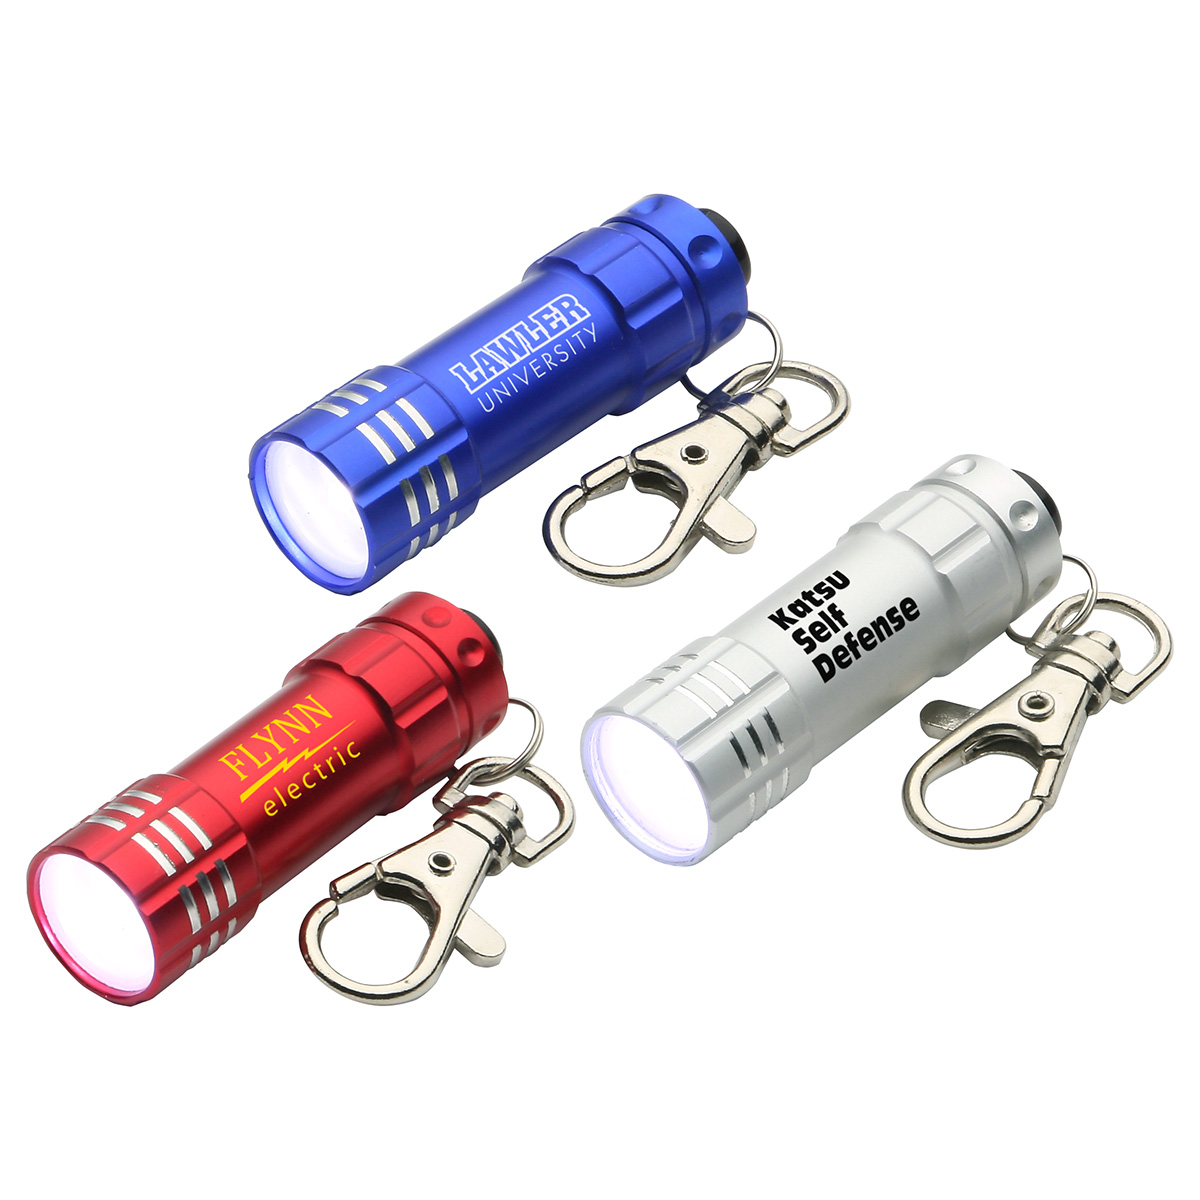 Bright Shine LED Keychain, WLT-BS11 - 1 Colour Imprint